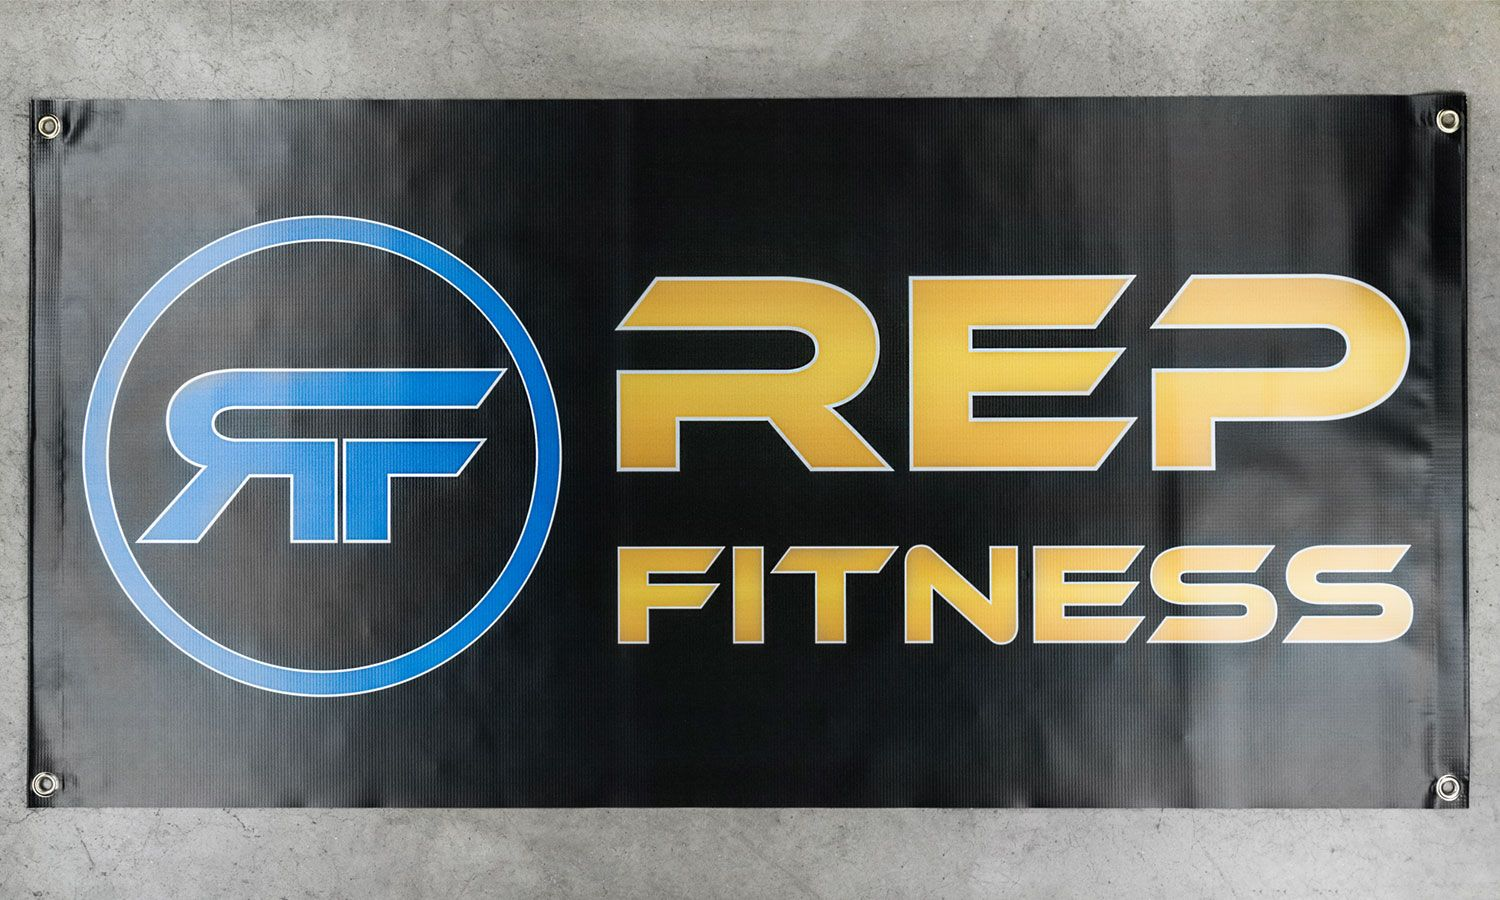 Rep fitness banners garage gym banner garage gym logos